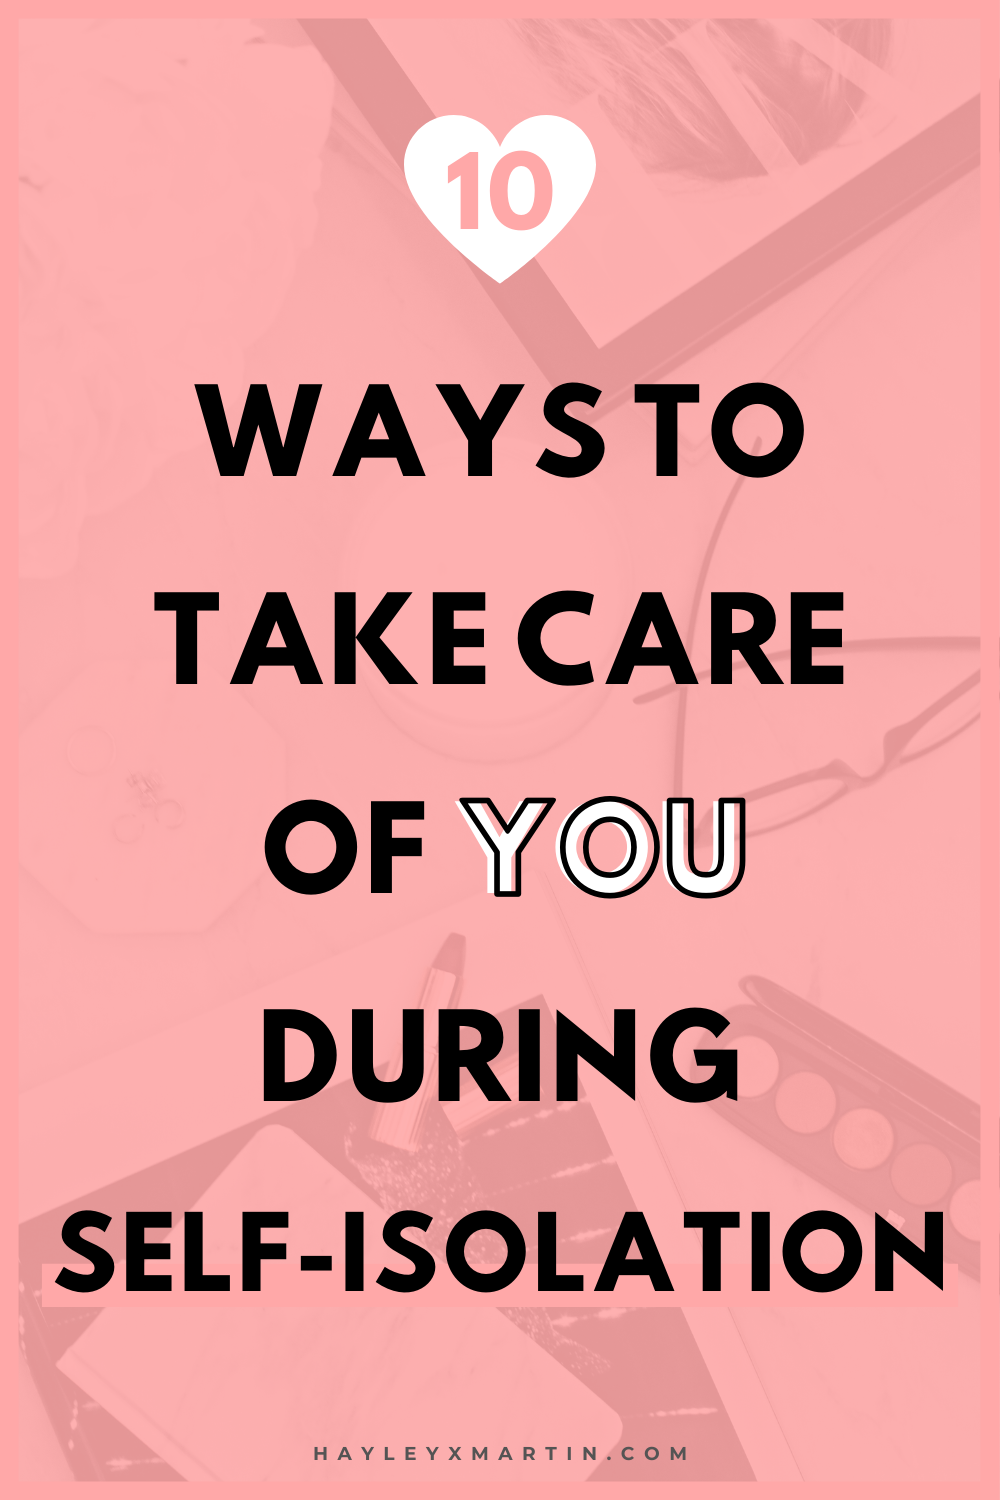 10 WAYS TO TAKE CARE OF YOU DURING SELF-ISOLATION | HAYLEYXMARTIN